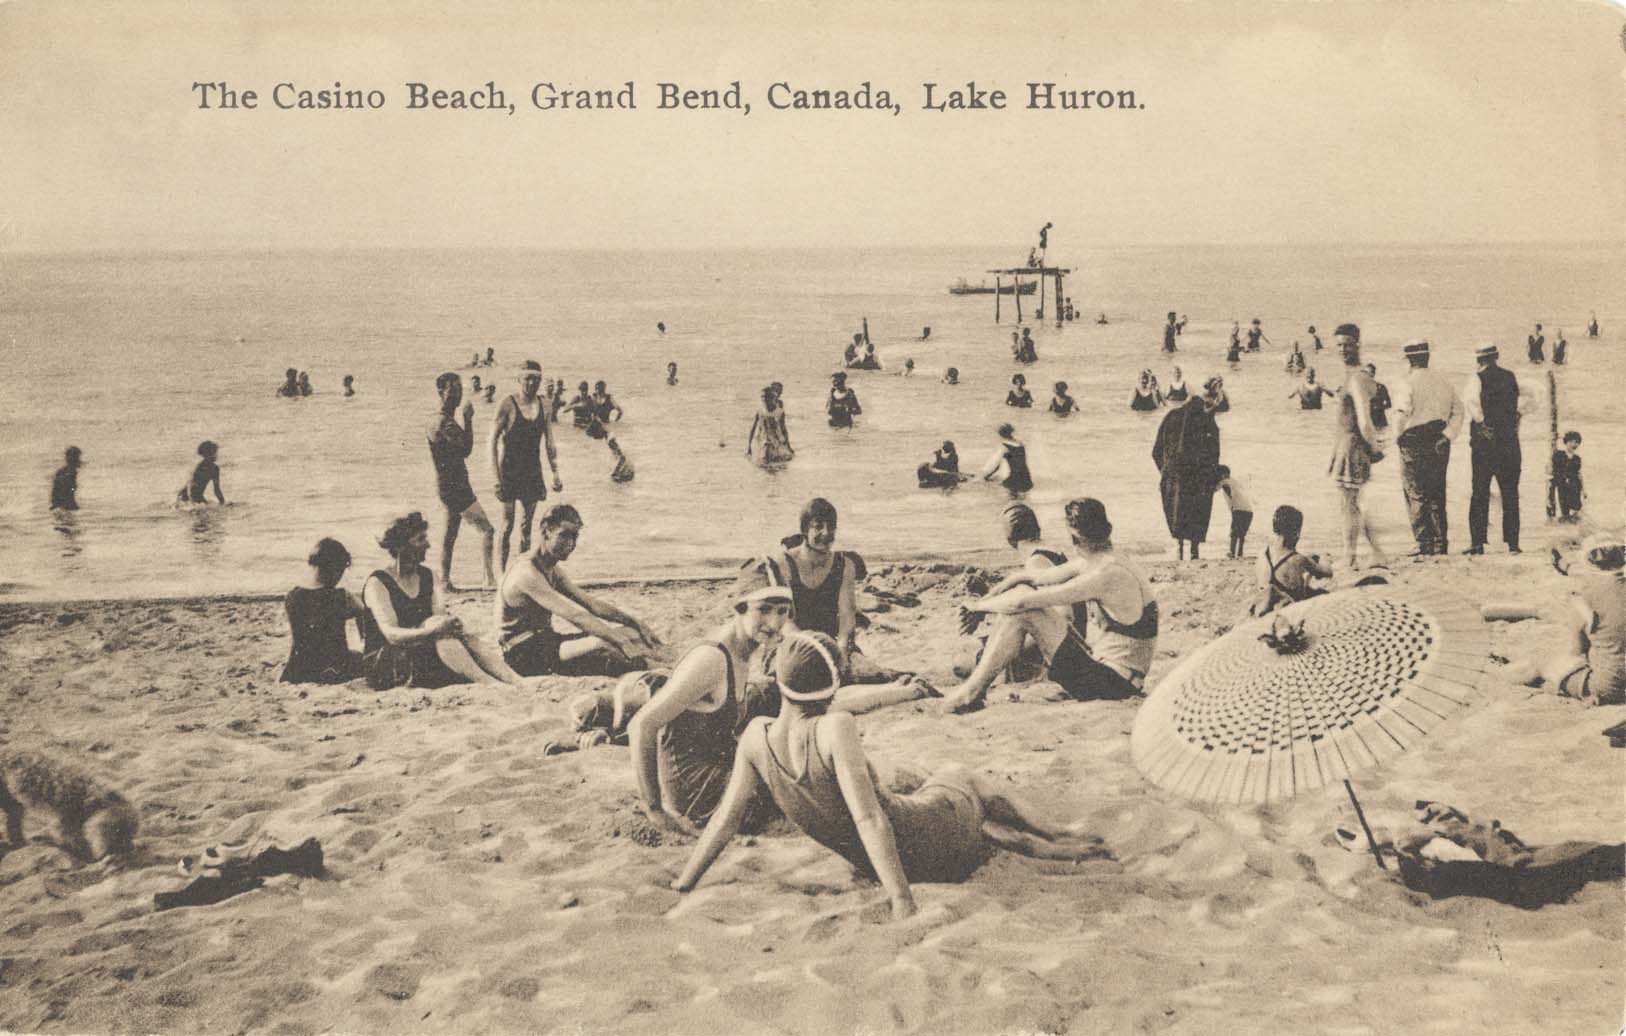 People sitting on the Grand Bend Beach.